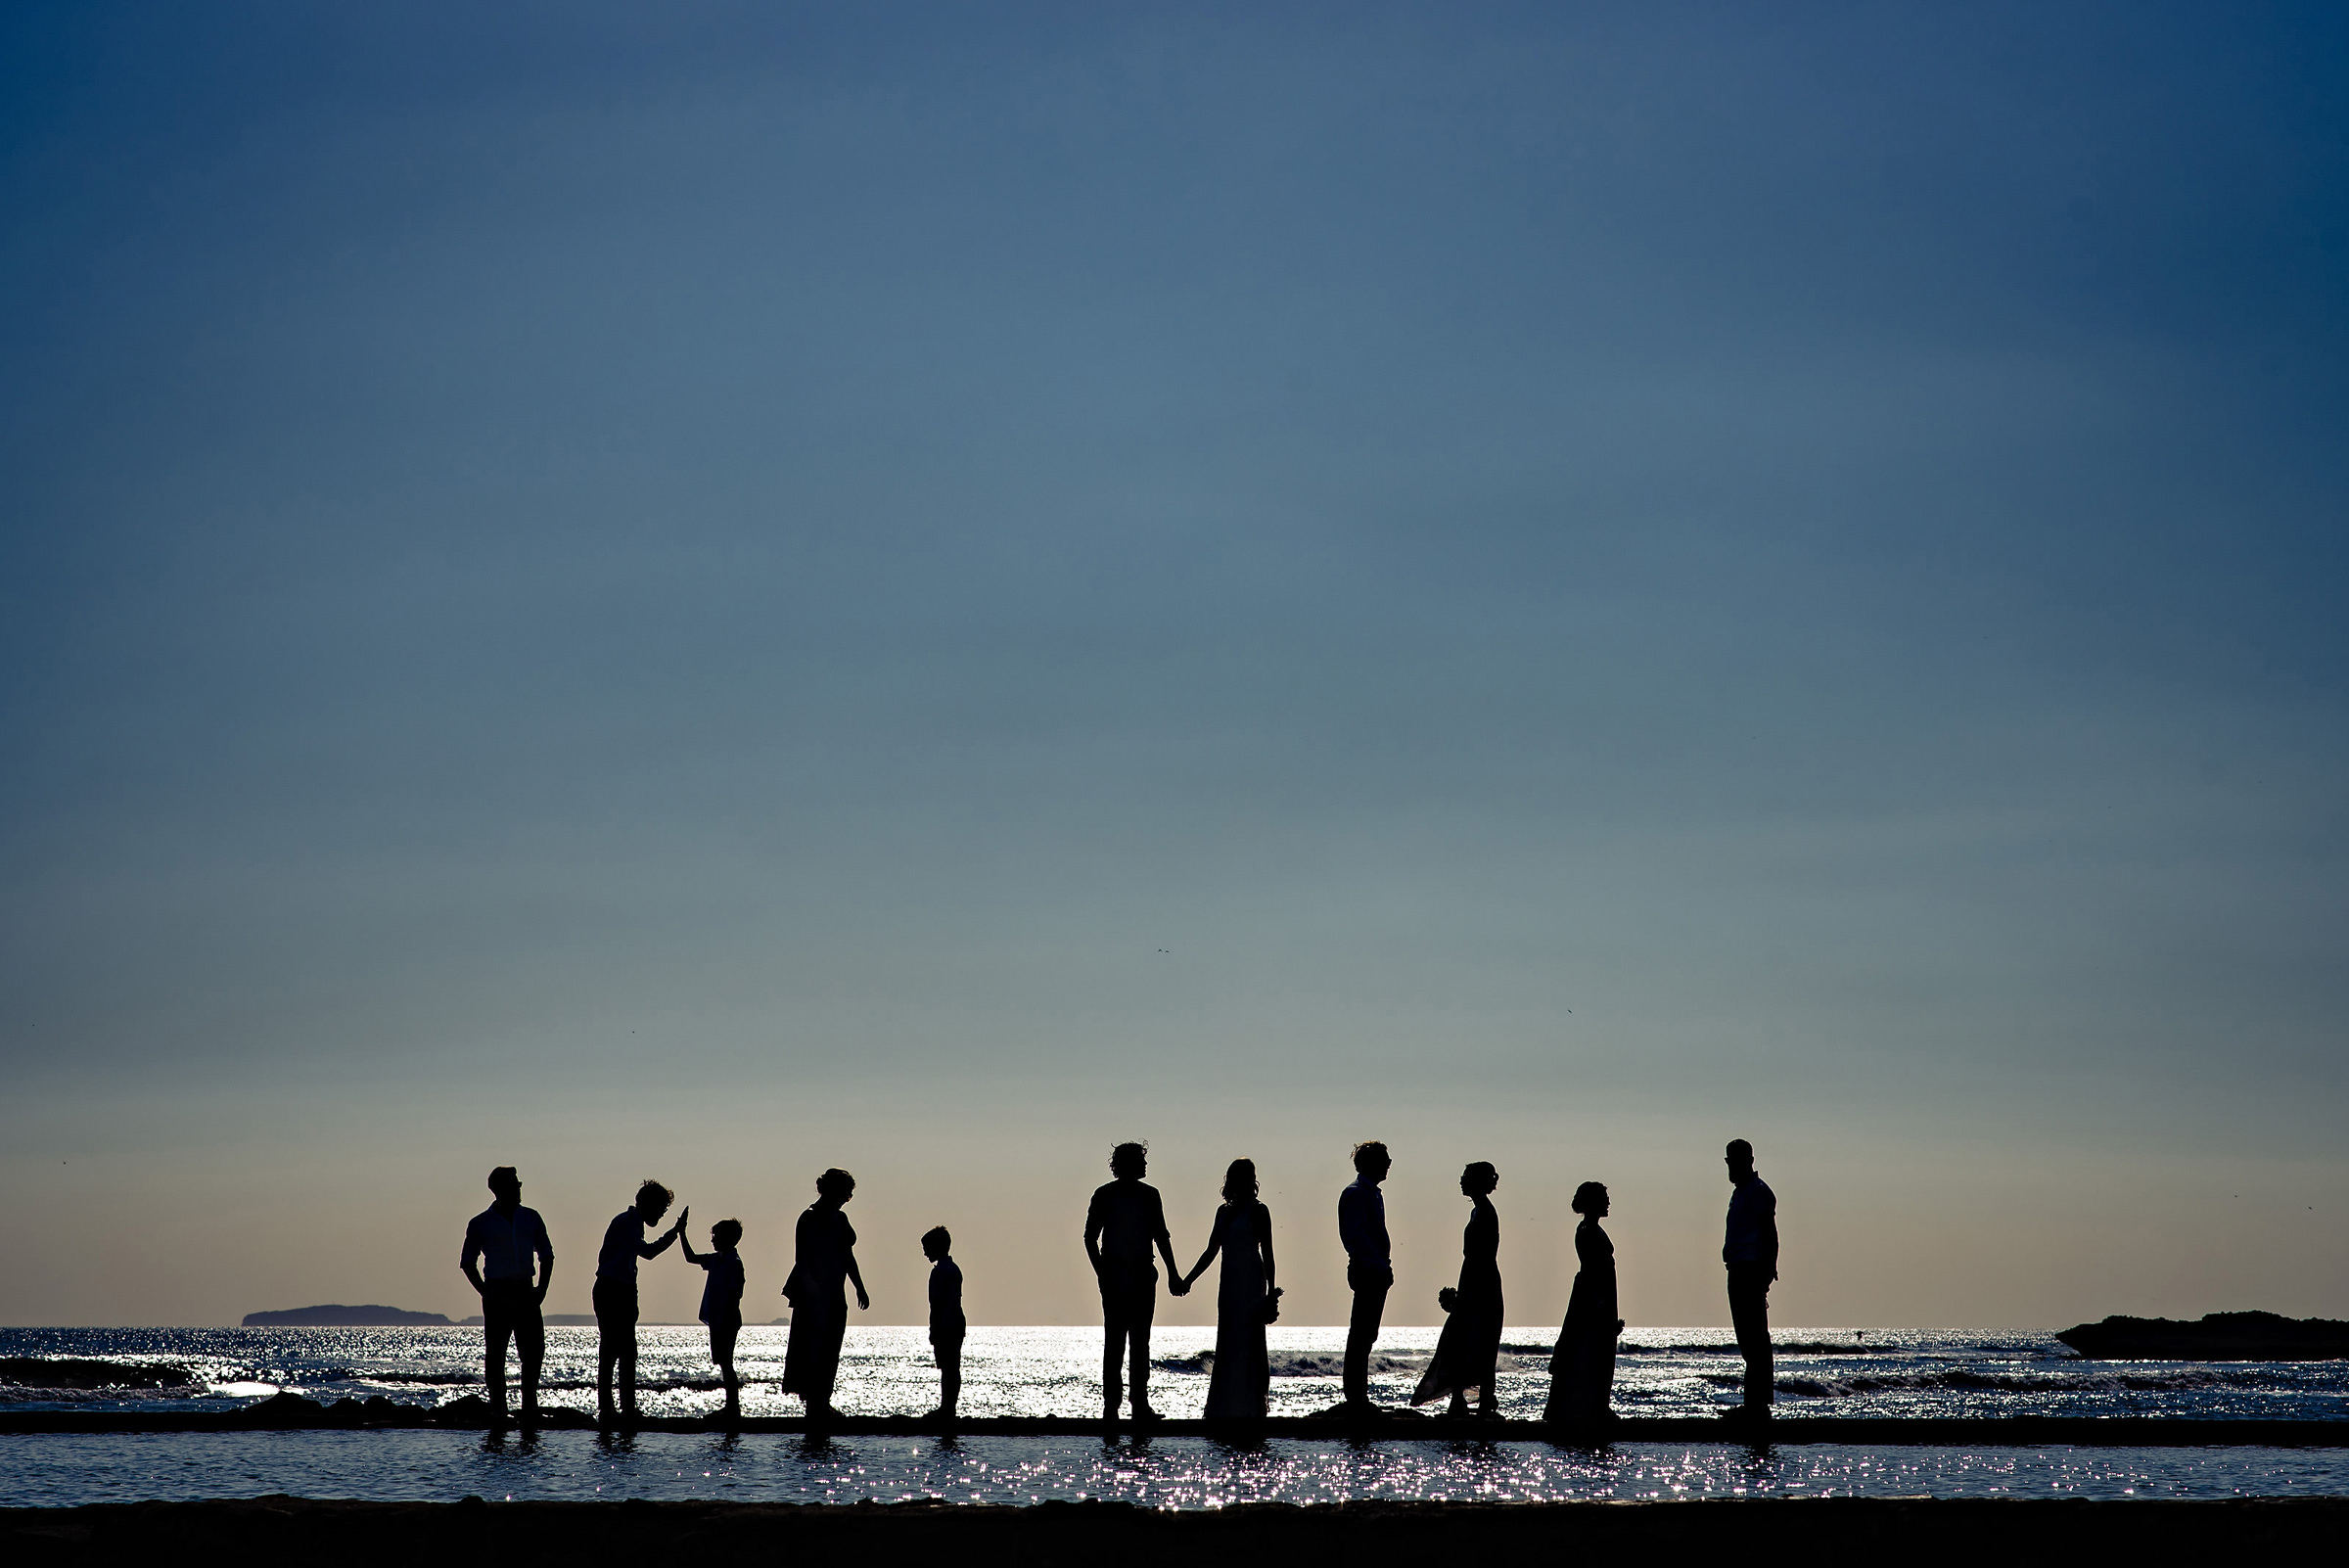 Group shot silhouette at surfs edge - photo by Moore Photography